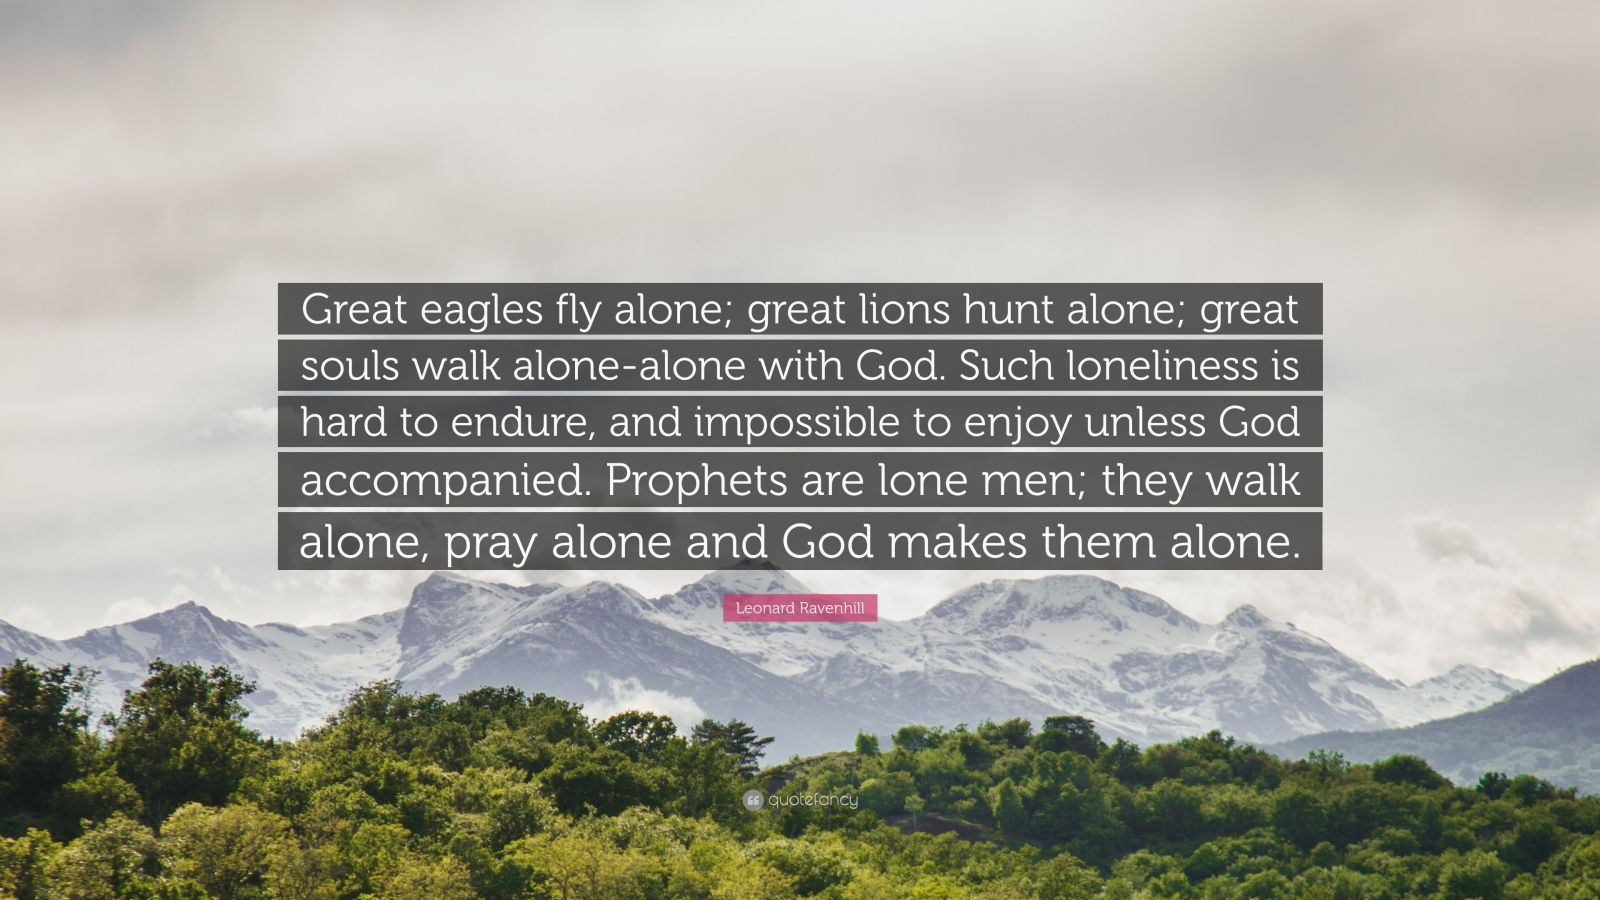 "Leonard Ravenhill Quote: ""Great eagles fly alone; great lions hunt alone; great souls walk alone-alone with God. Such loneliness is hard to endure, and impossible to enjoy unless God accompanied. Prophets are lone men; they walk alone, pray alone and God makes them alone."""